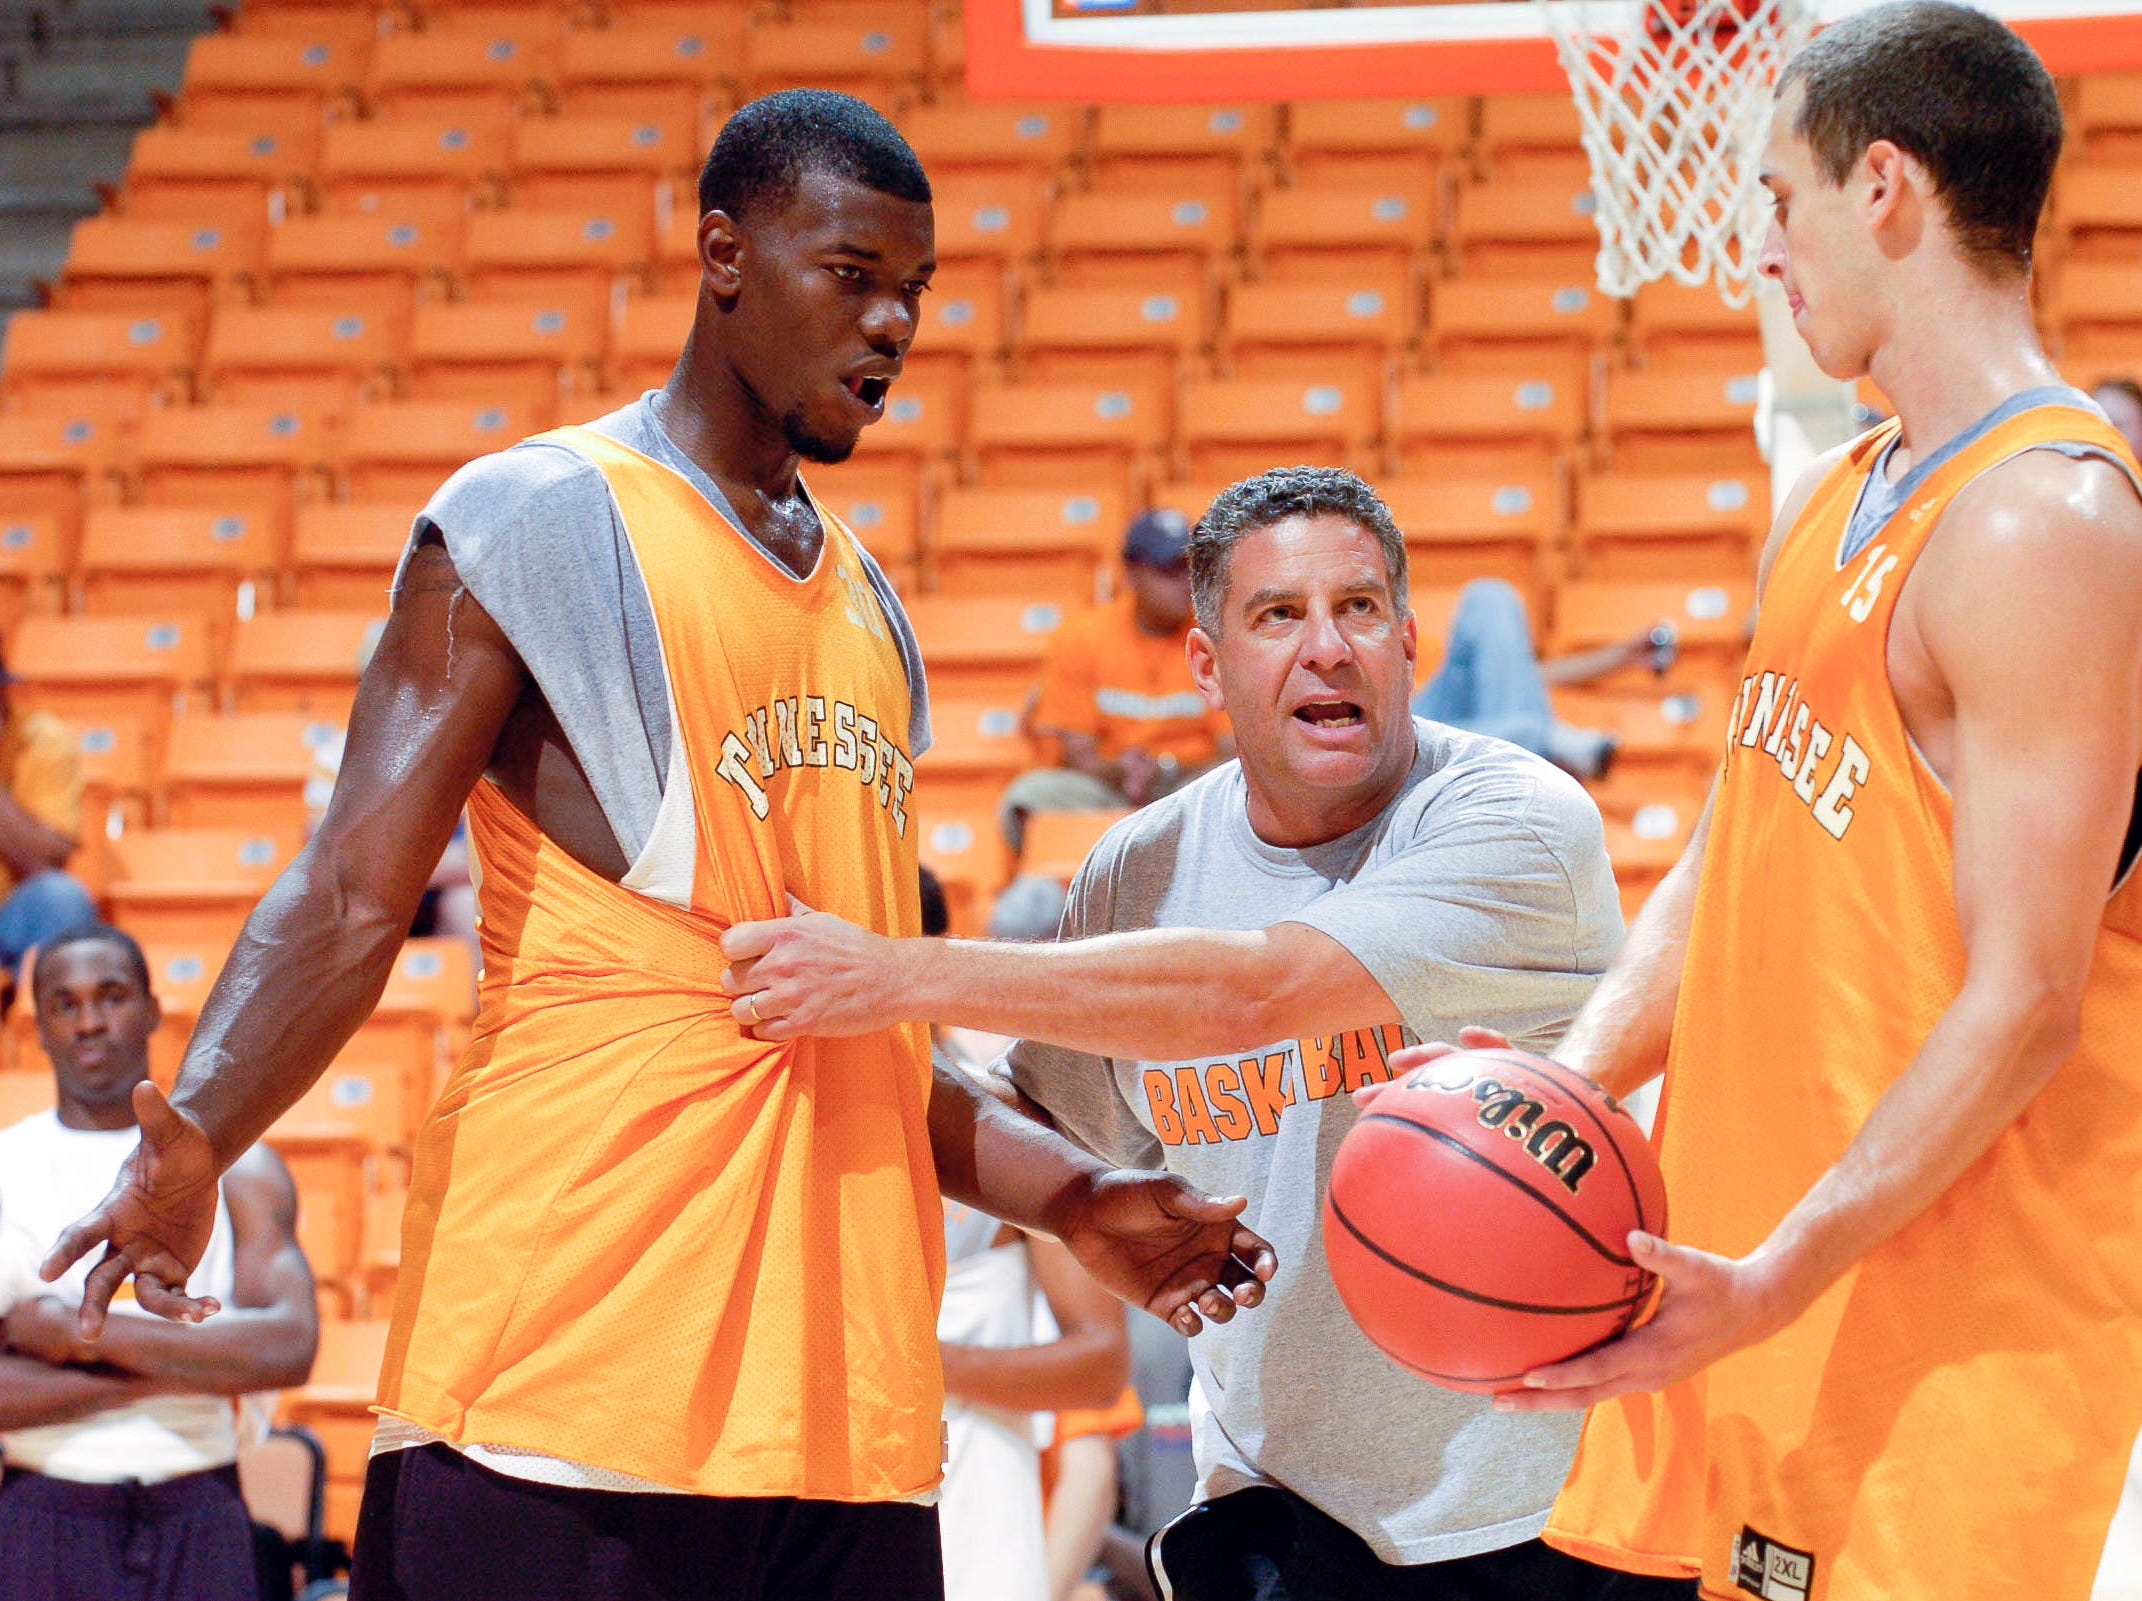 Bruce Pearl gives directions to Duke Crews, left, and Jordan Howell during a practice at Saturday at Thompson-Boling Arena in 2006.